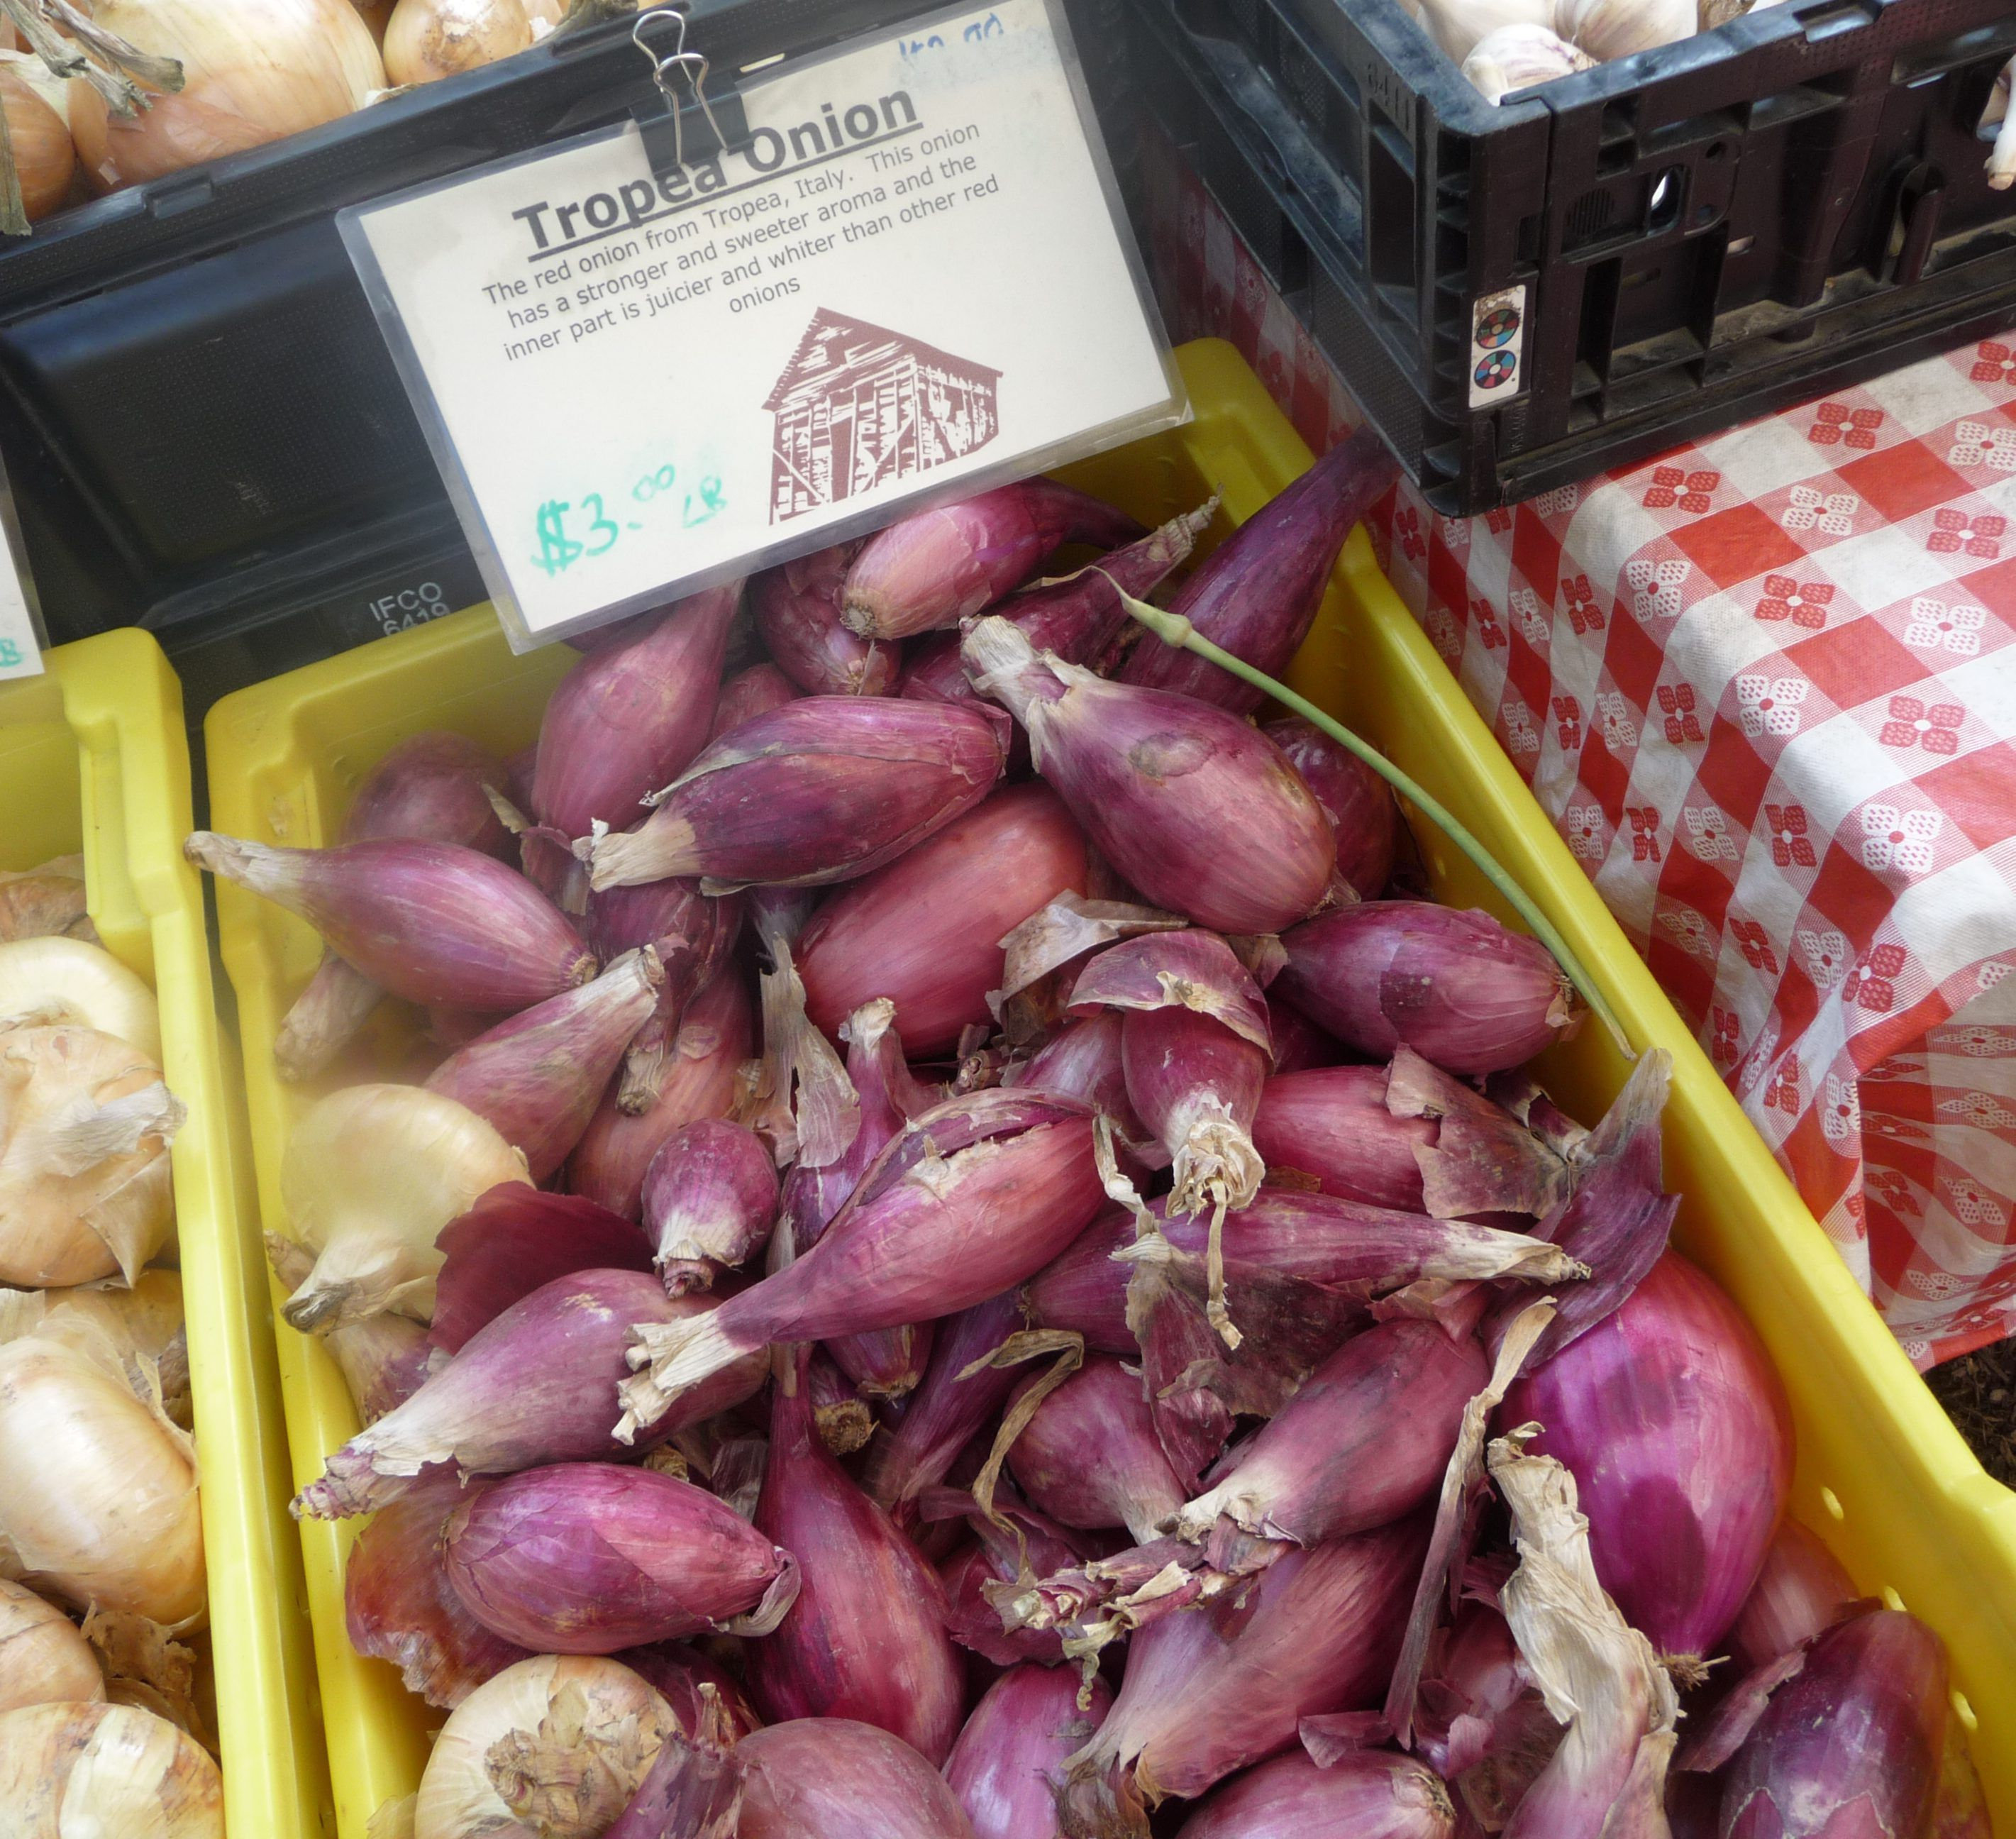 Organic Tropea Onions from the farmer's market